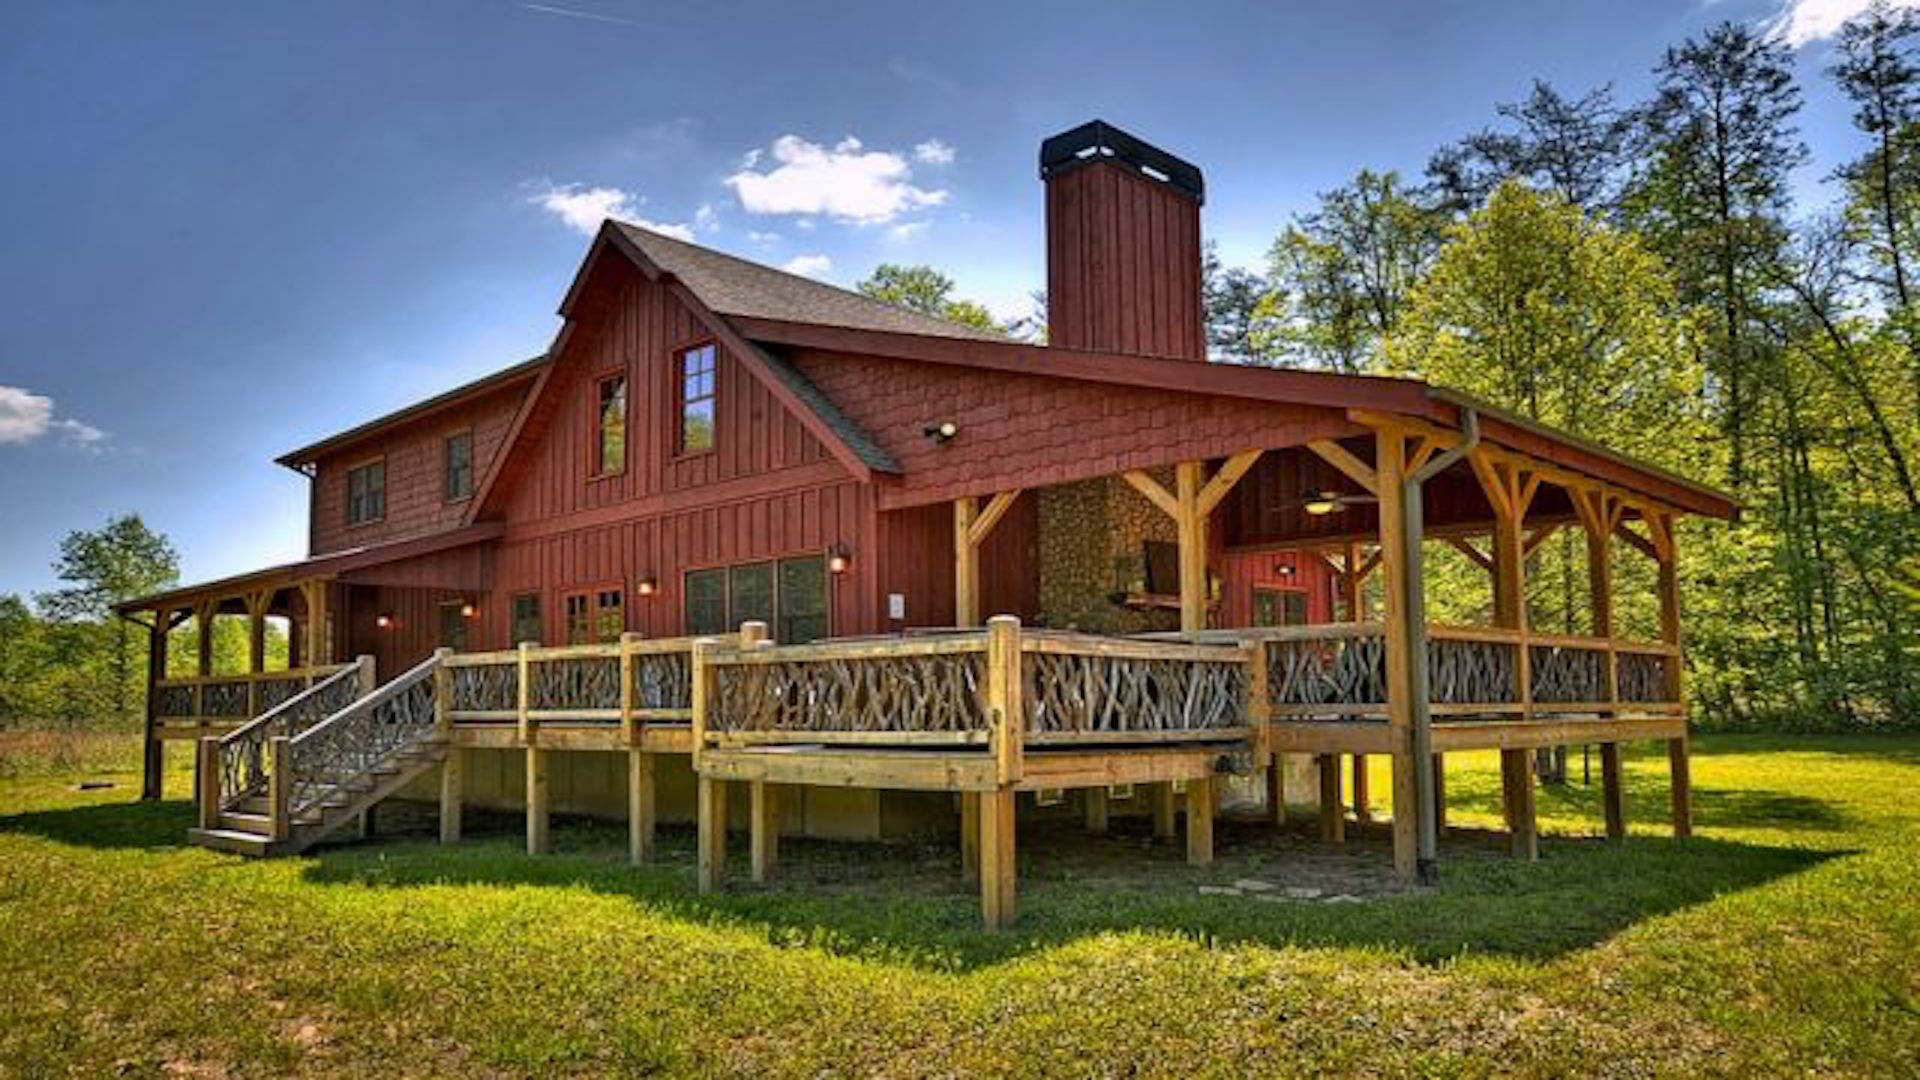 sale ontario luxury mountain ga mountains waterfront s georgia cottages river bay ridge cabins north rentals georgian in cabin for blue